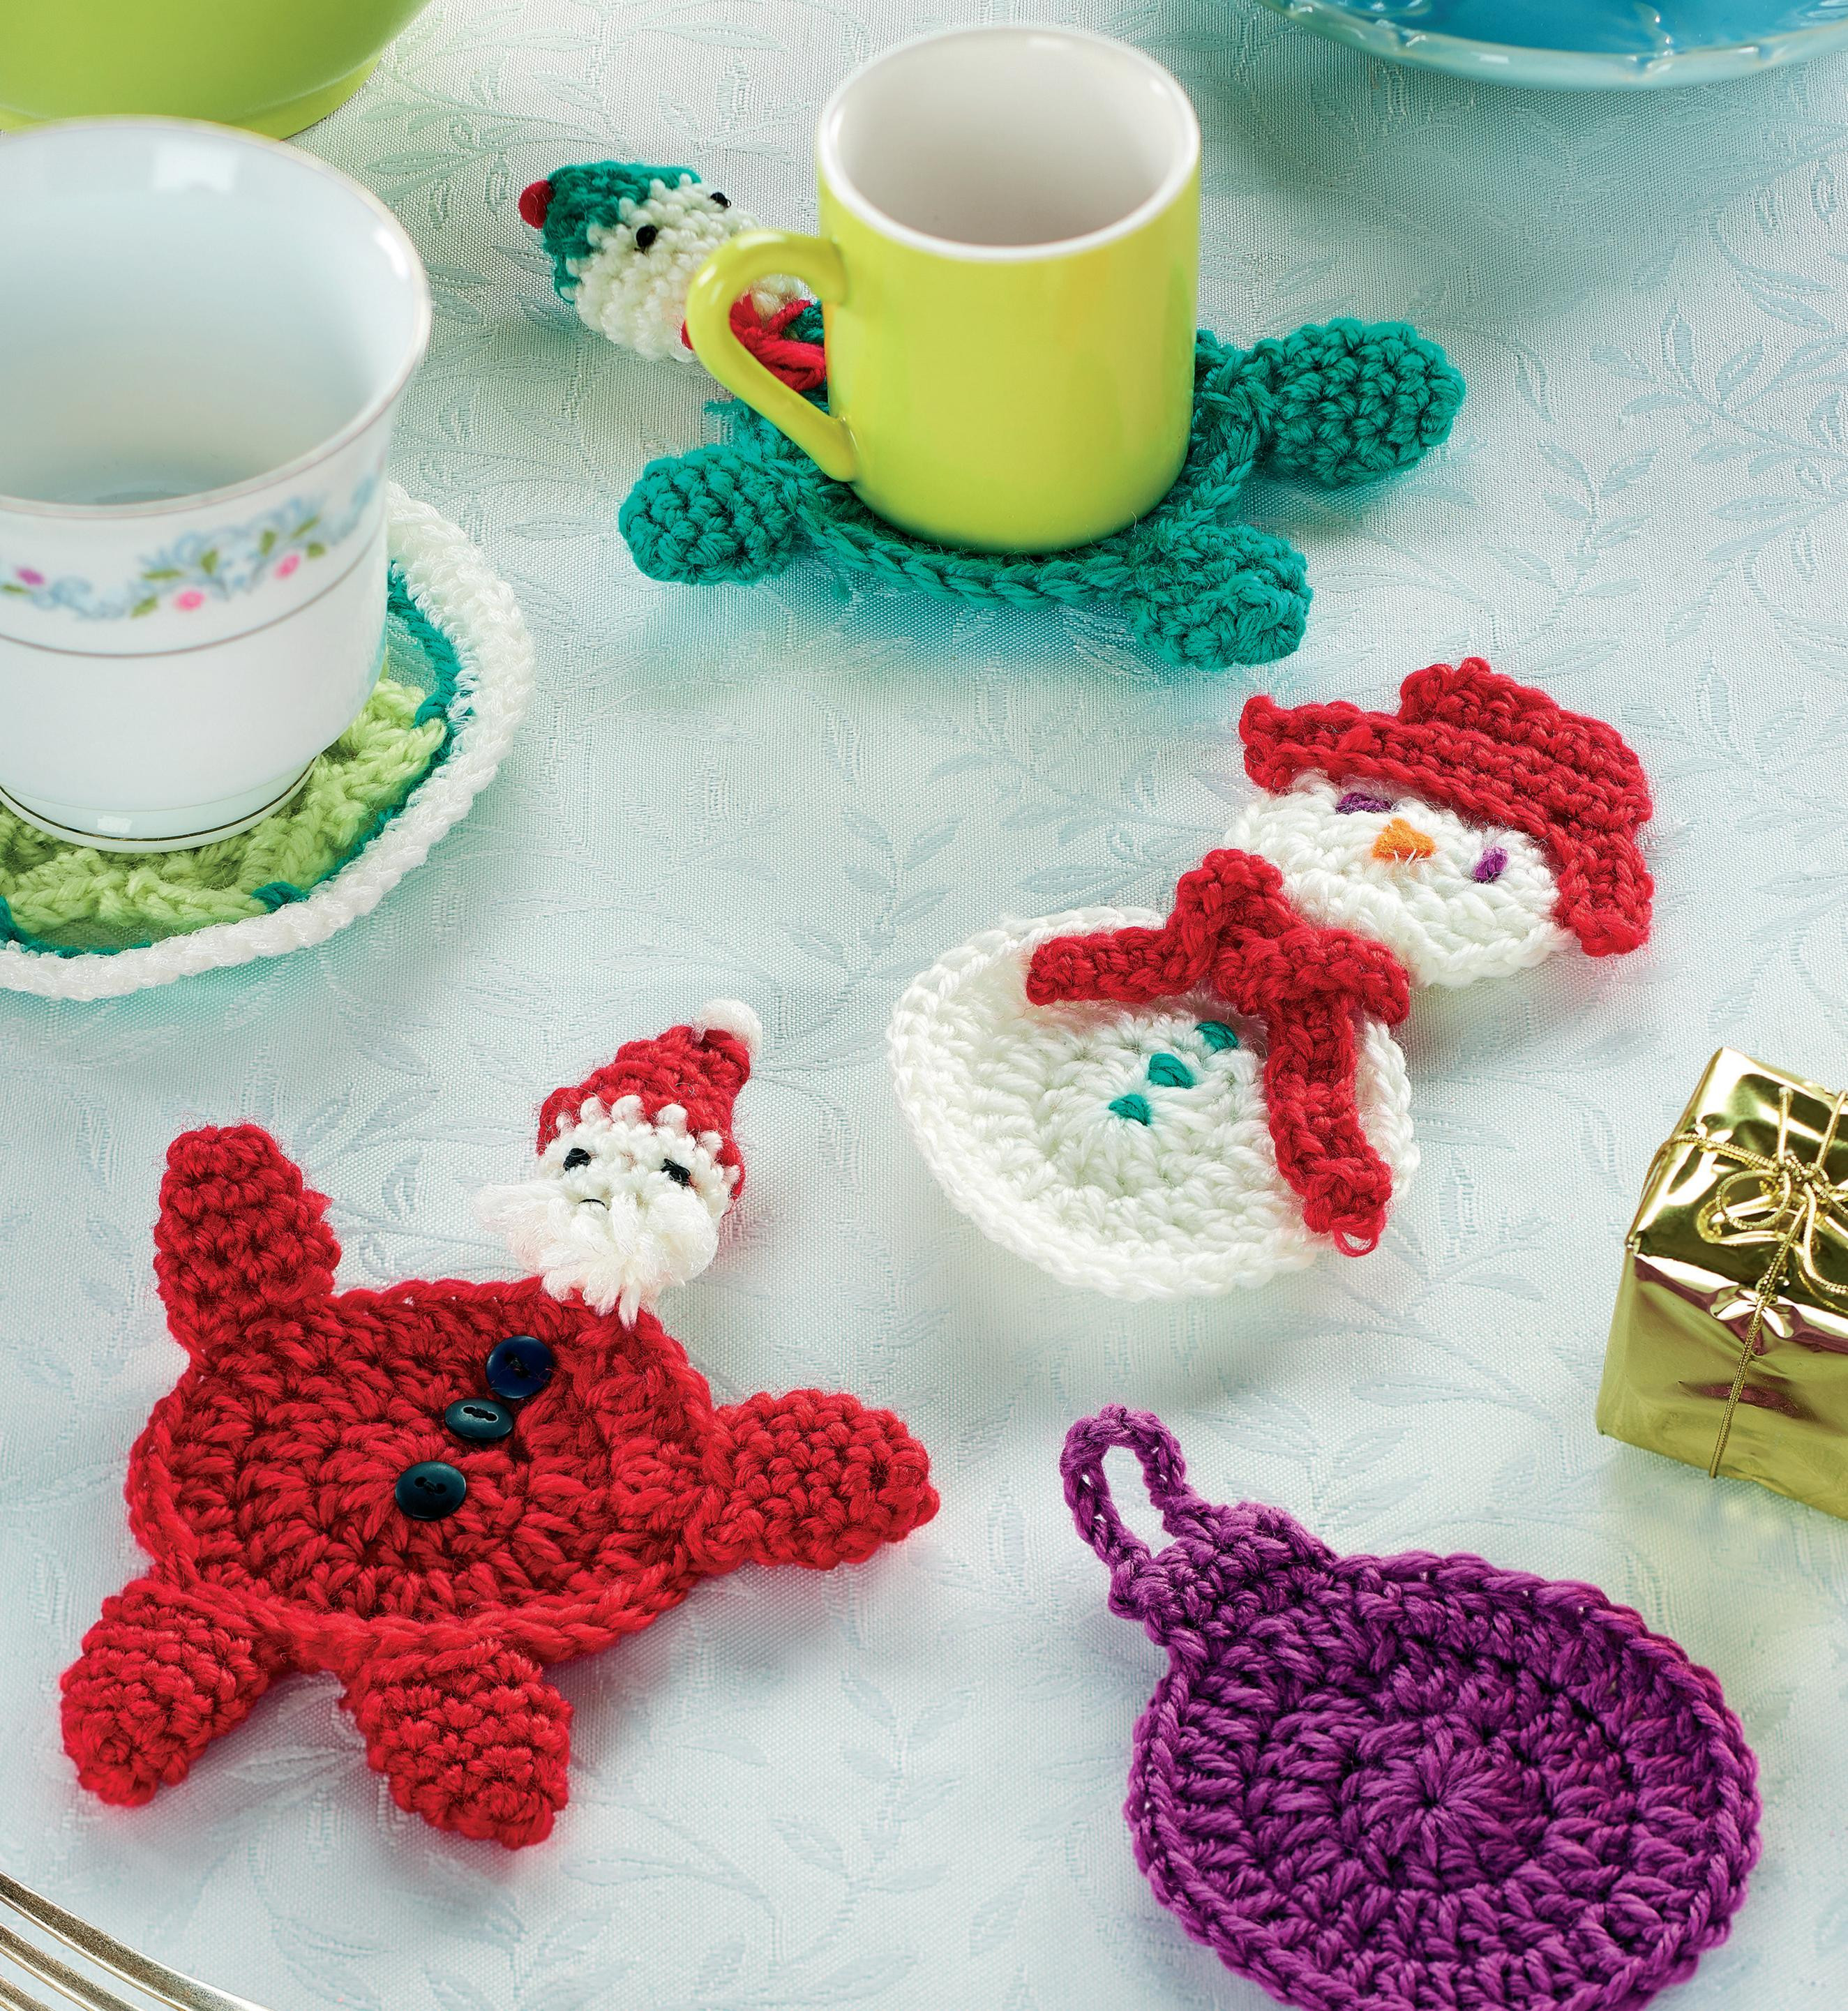 Crochet ornament Awesome Crochet Christmas Coasters Crochet Pattern Of Unique 43 Images Crochet ornament